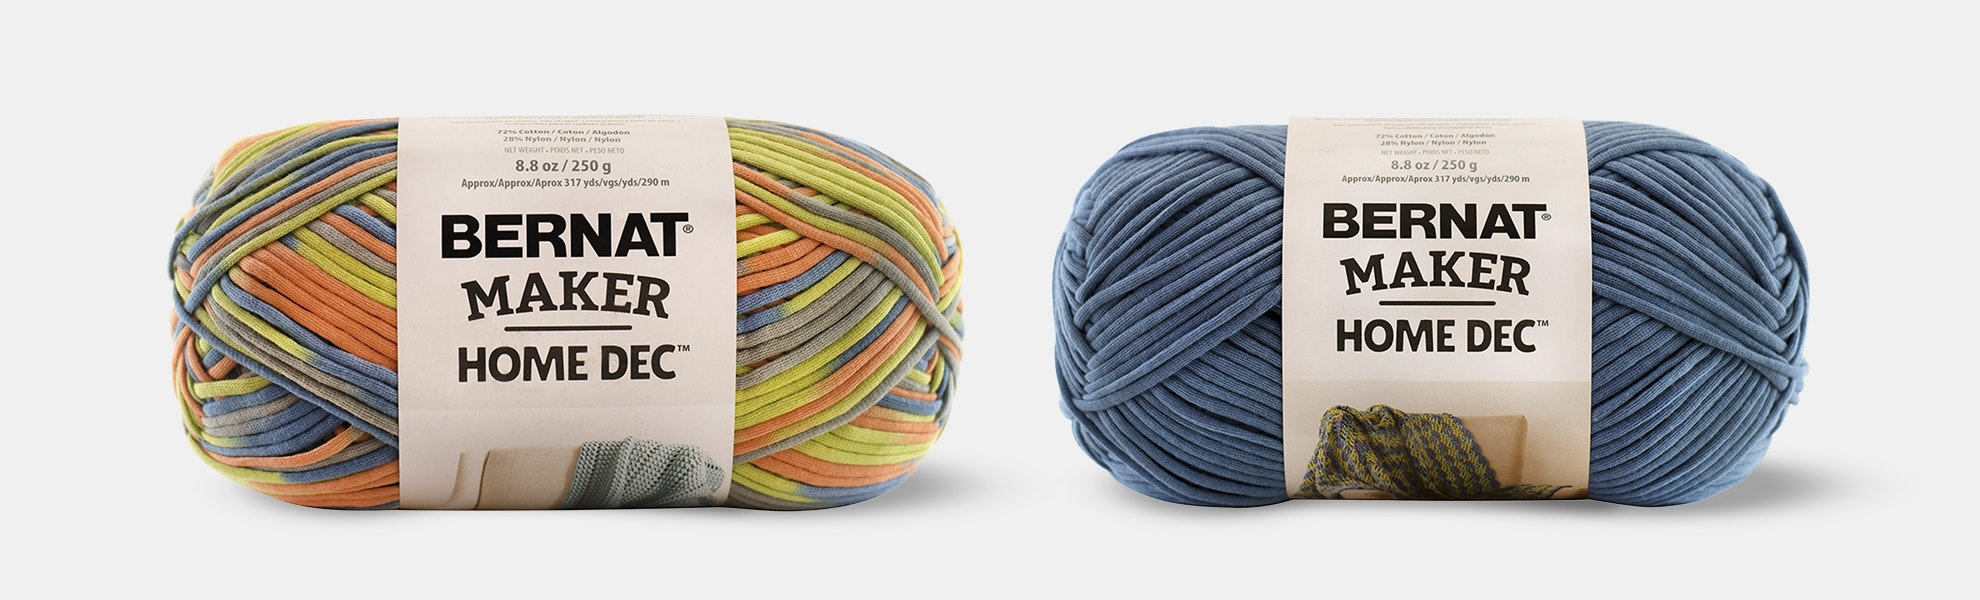 Maker Home Dec Yarn by Bernat (2-Pack)